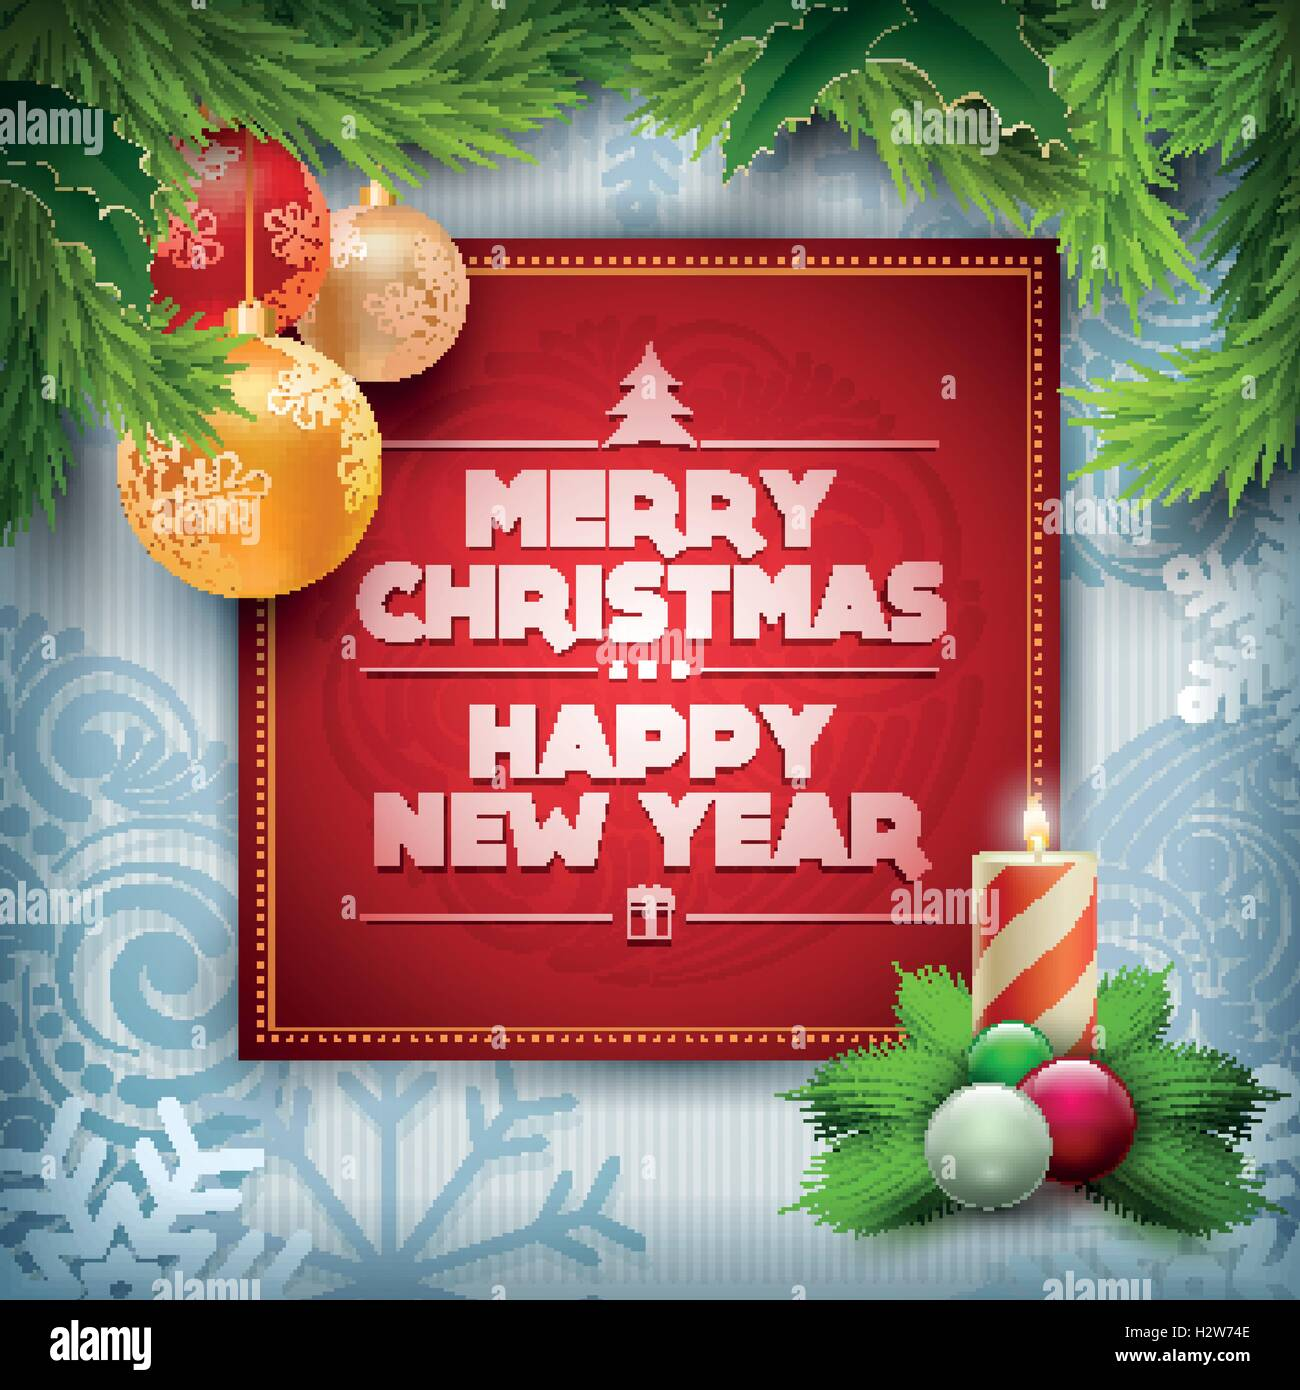 vector christmas and new year wishes on card christmas related ornaments objects on color background elements are layered